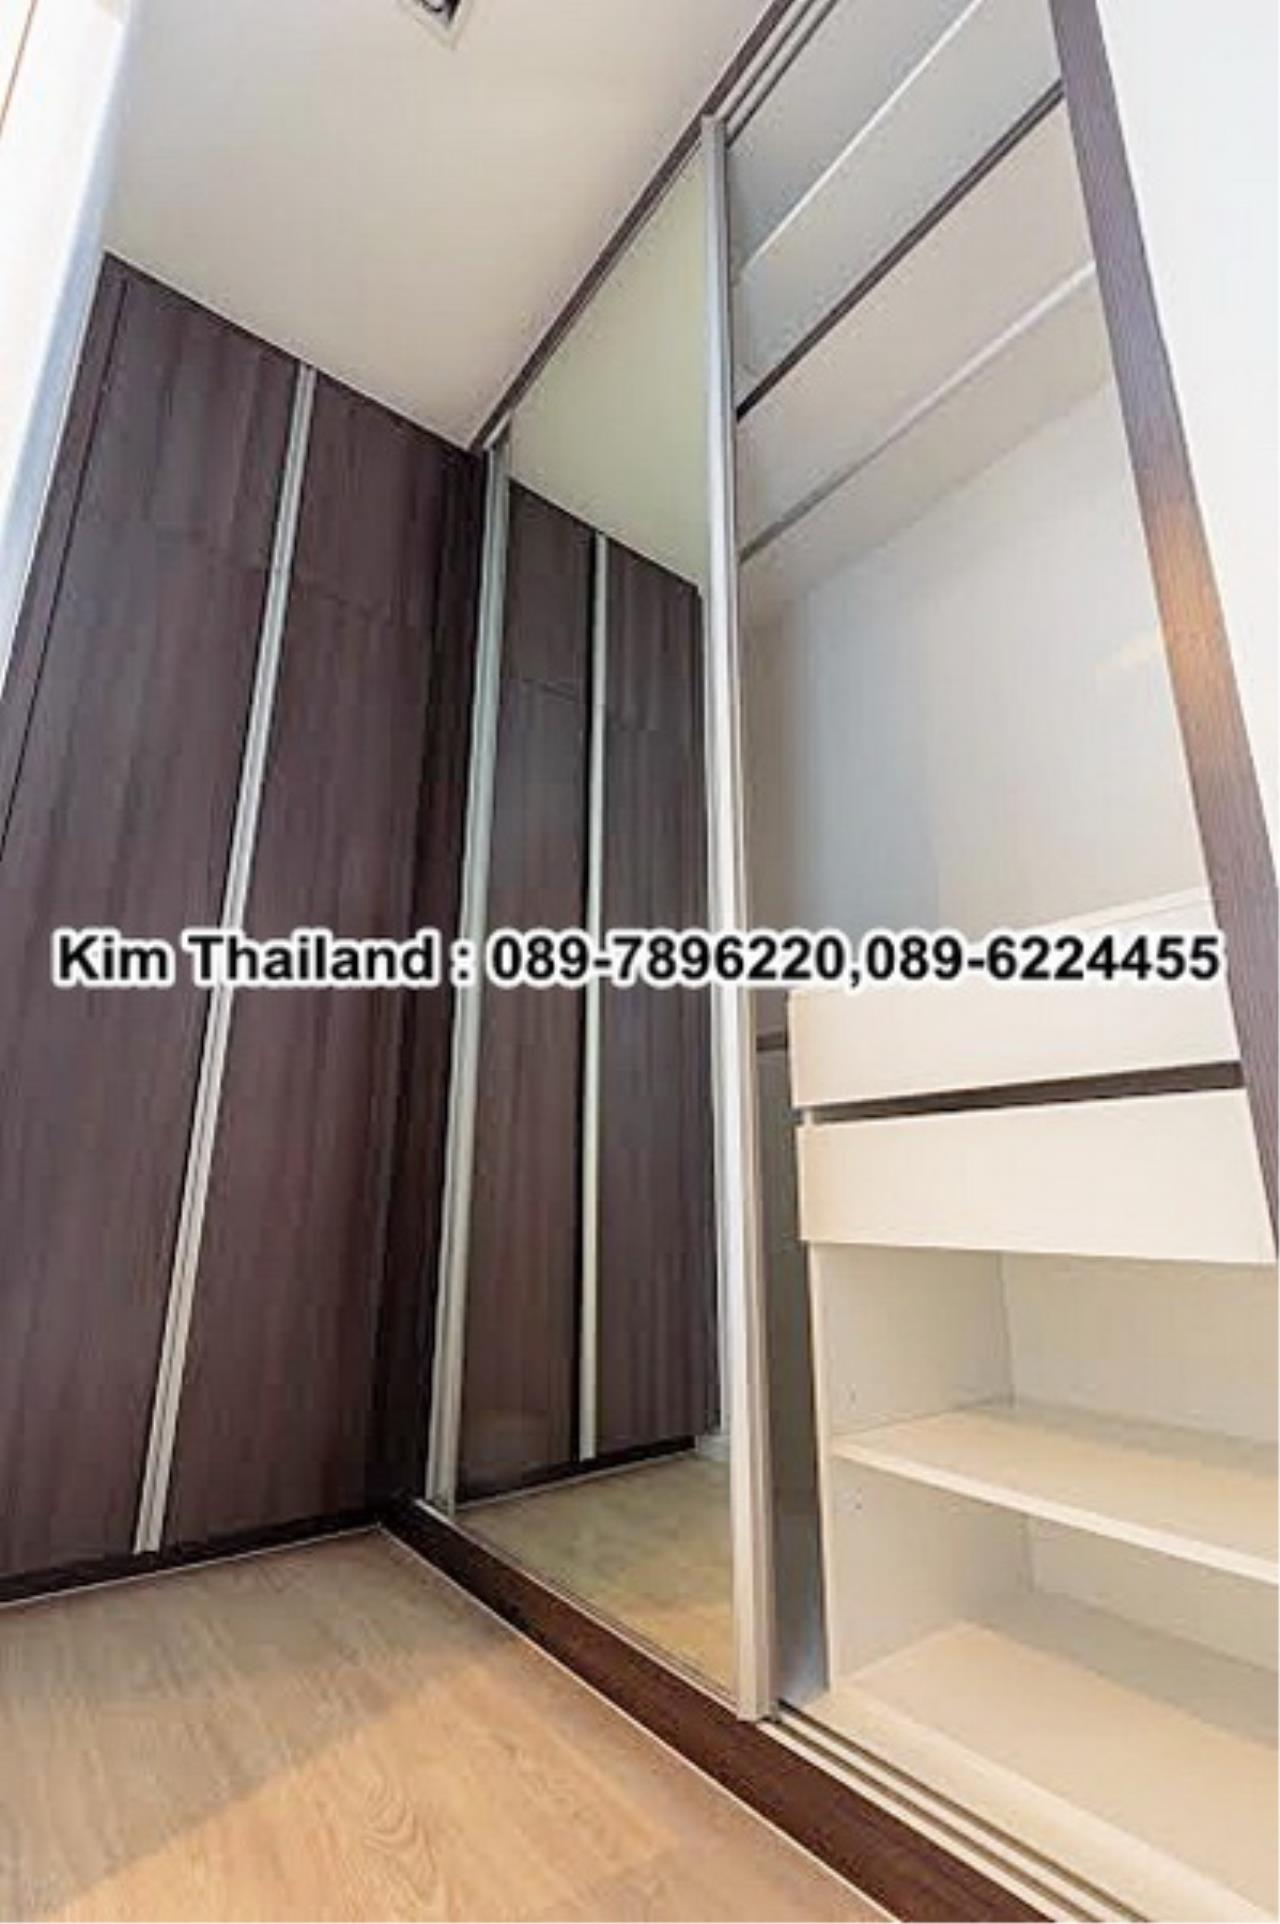 BKKcondorental Agency's For rent, Condo Quinn Ratchada 17., Area 45 sq.m. 1 bedroom. Rental 28000 THB per month. 15